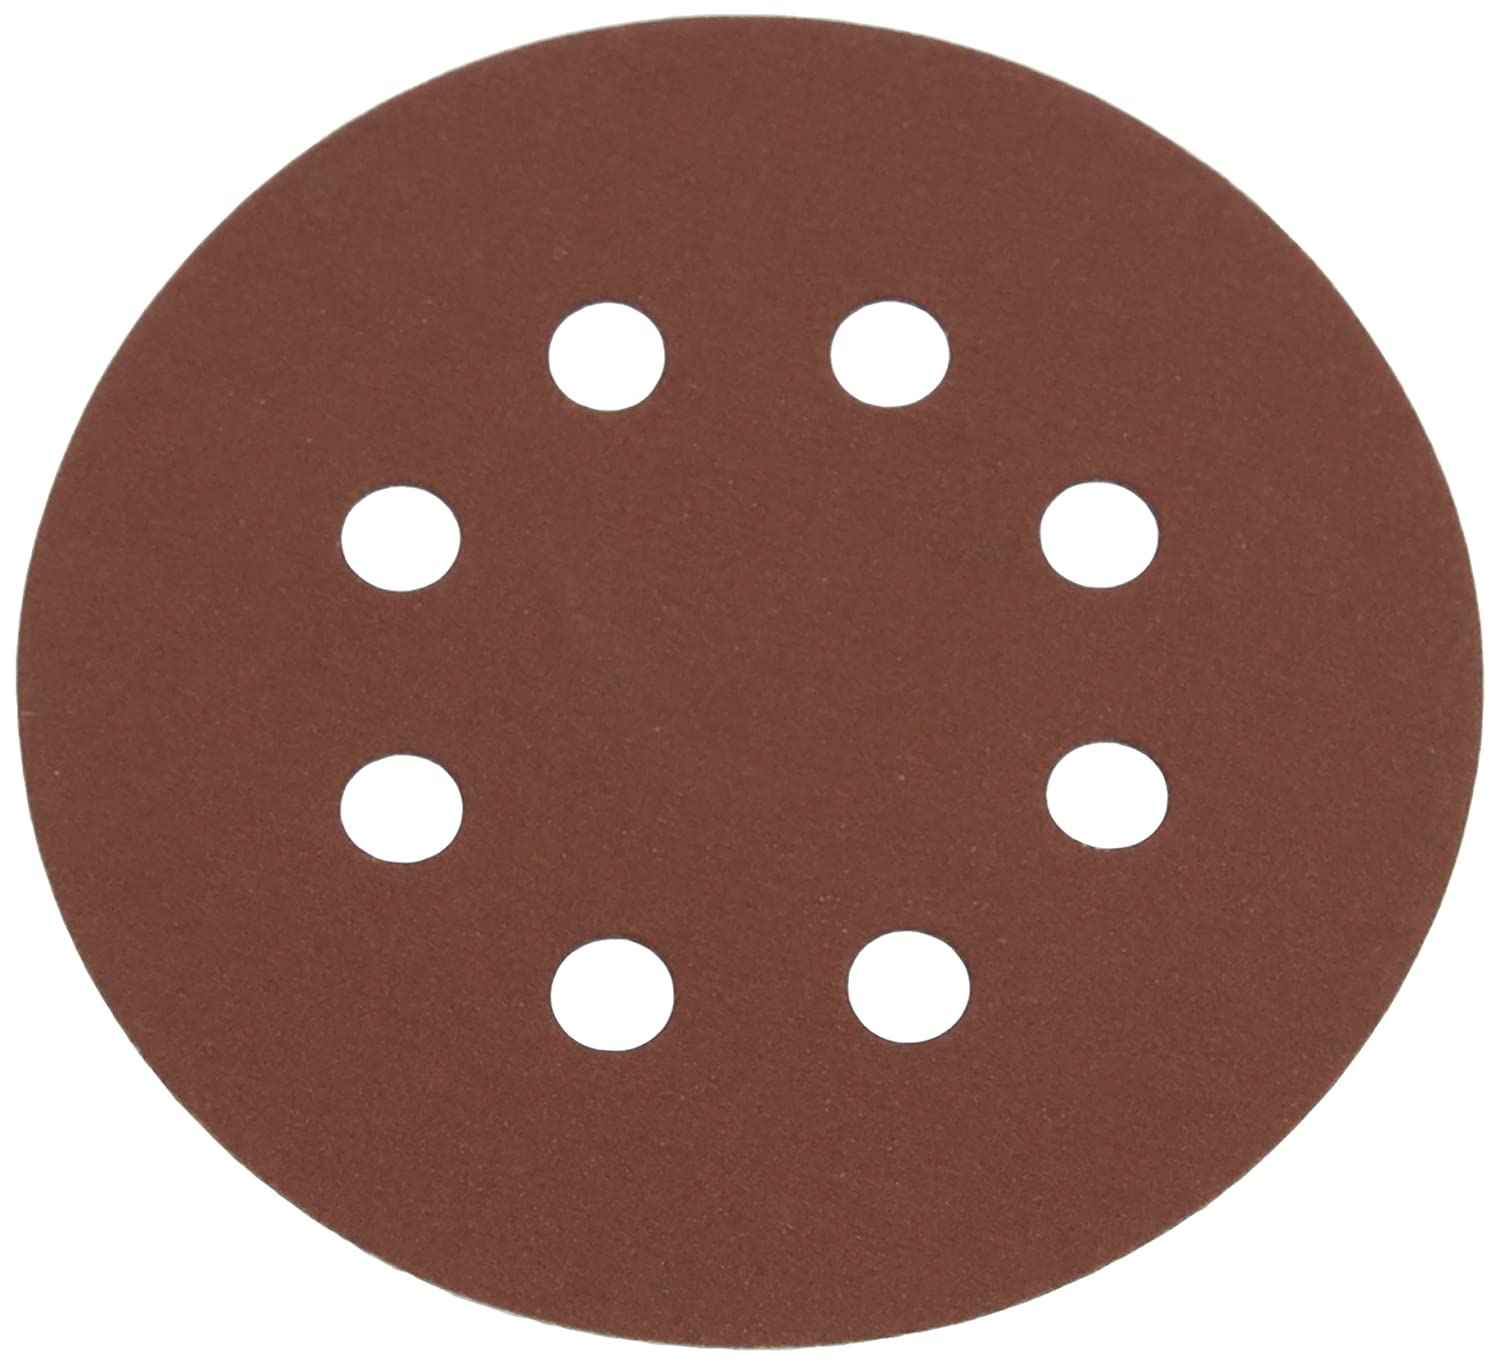 Silverline 822649 125 mm 40 Grit Hook and Loop Discs Punched